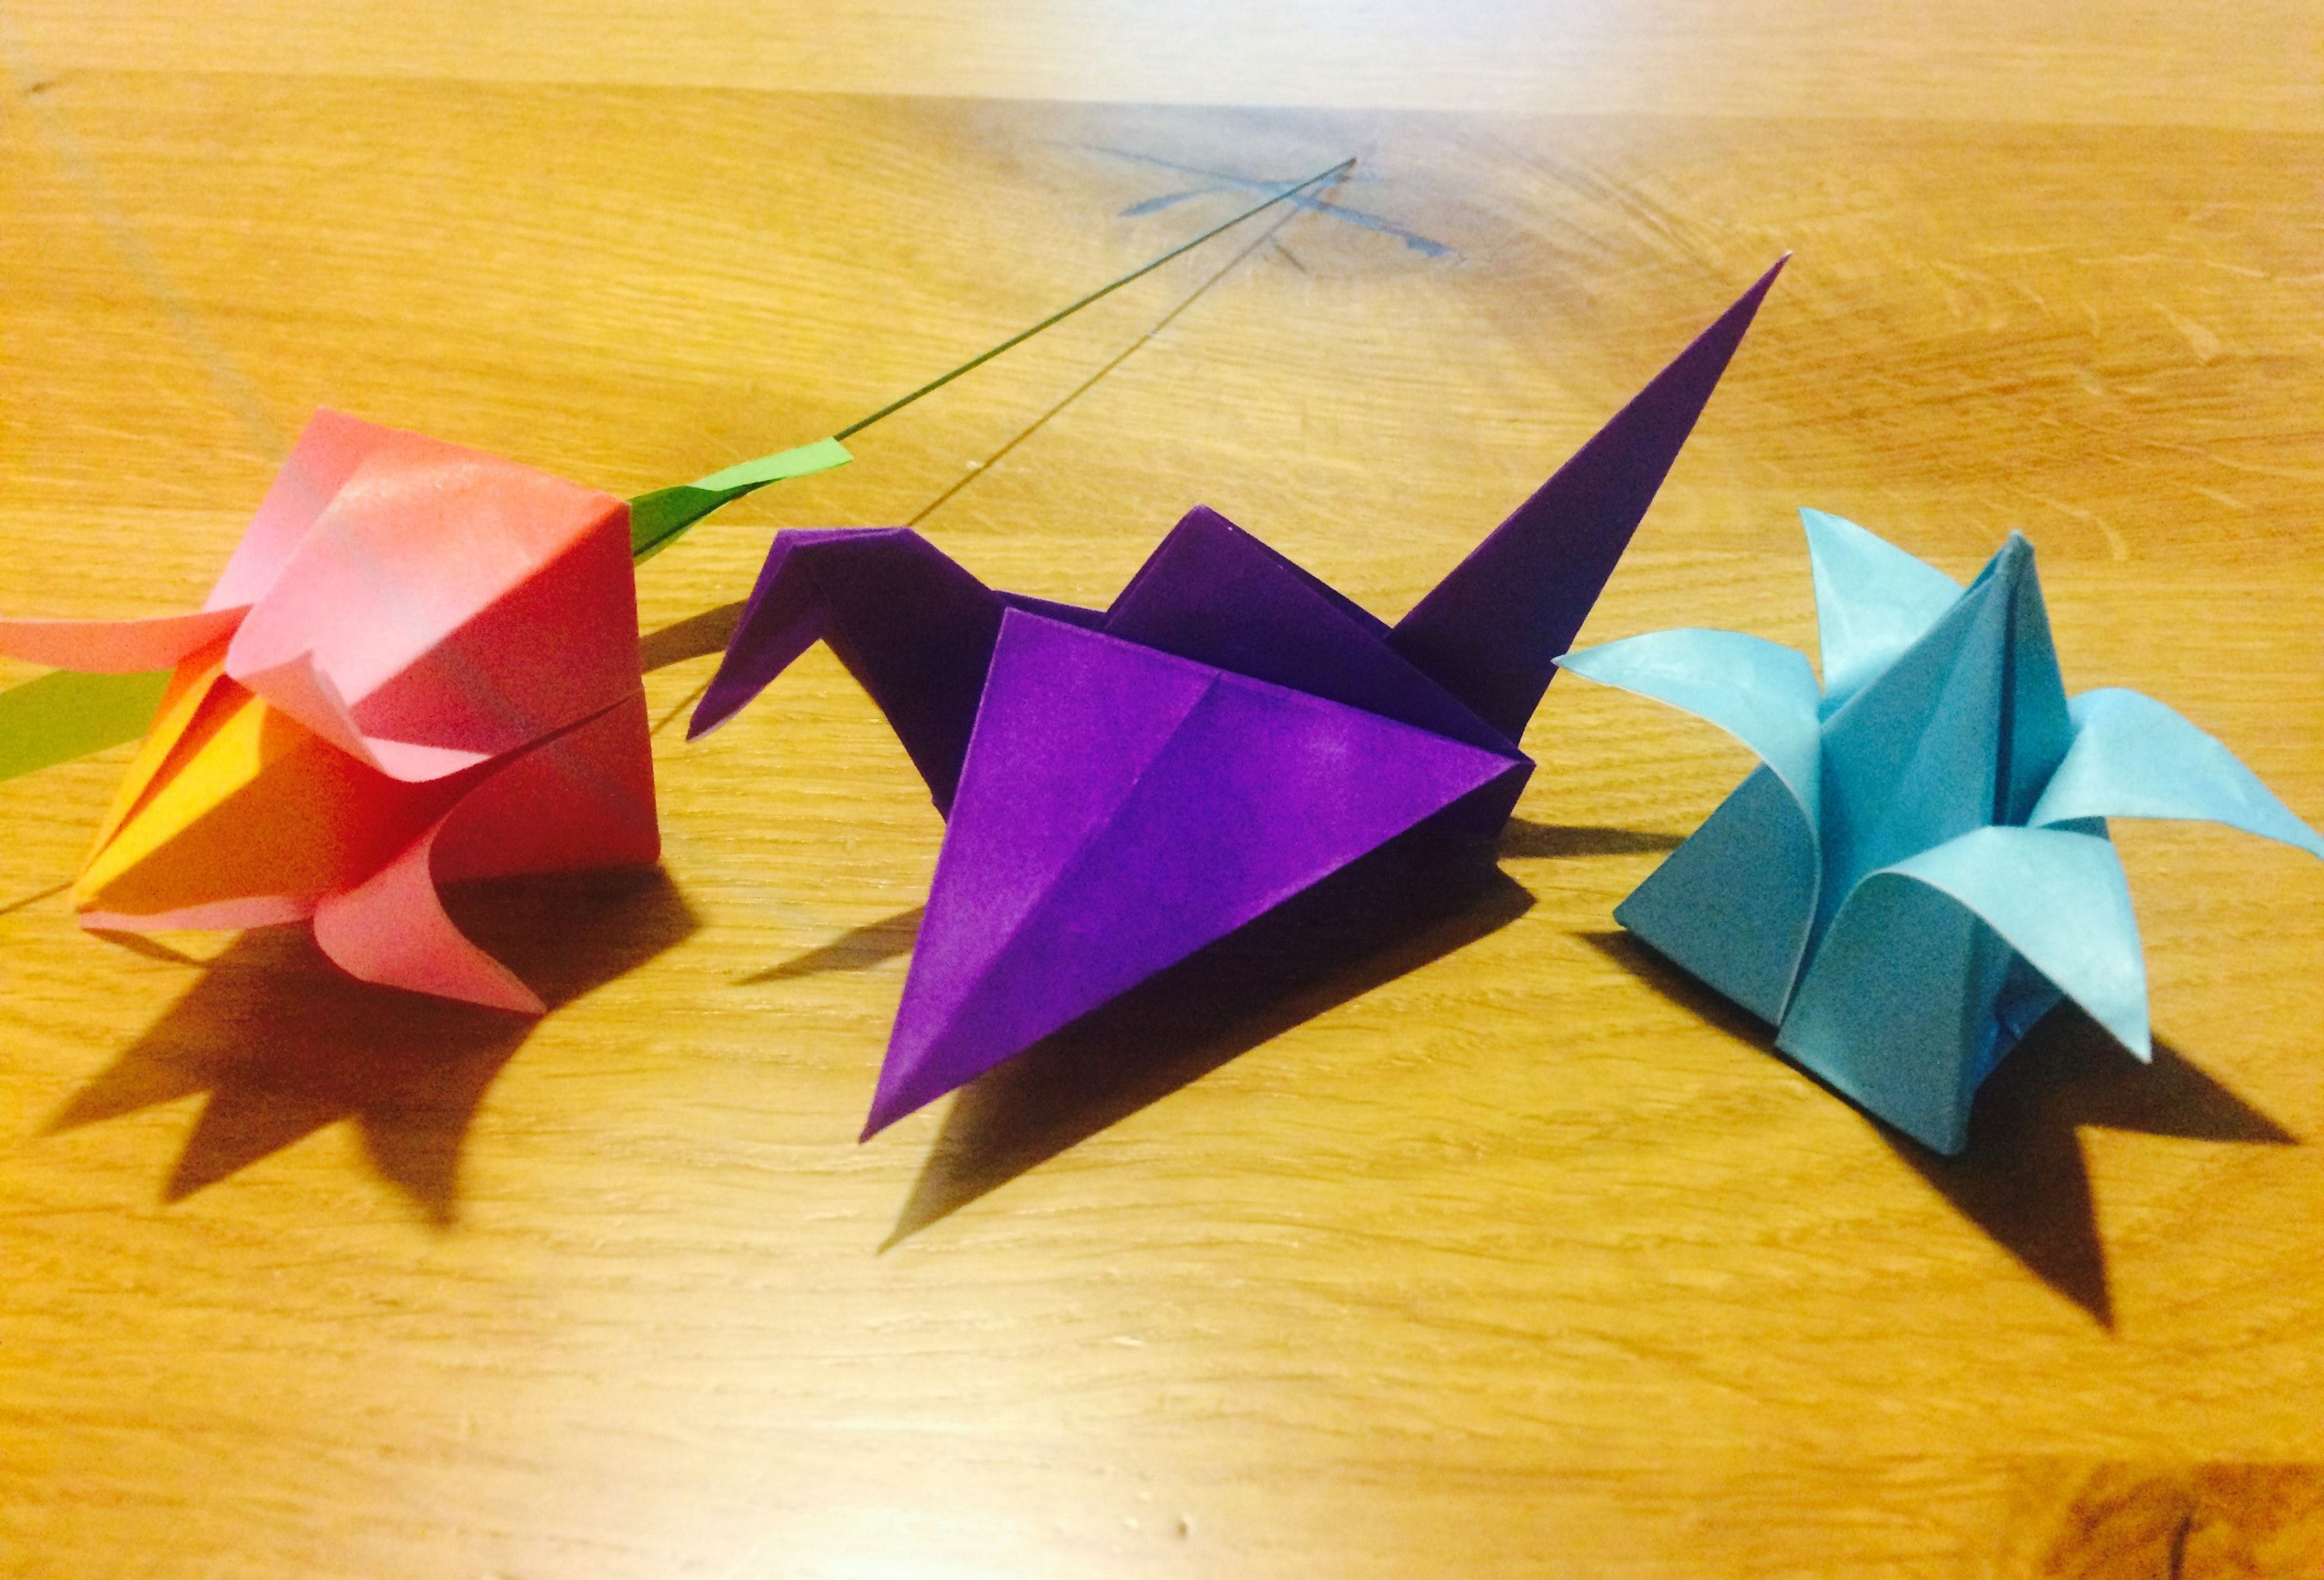 Lockdown: With time on your hands could origami make you a more mindful person?